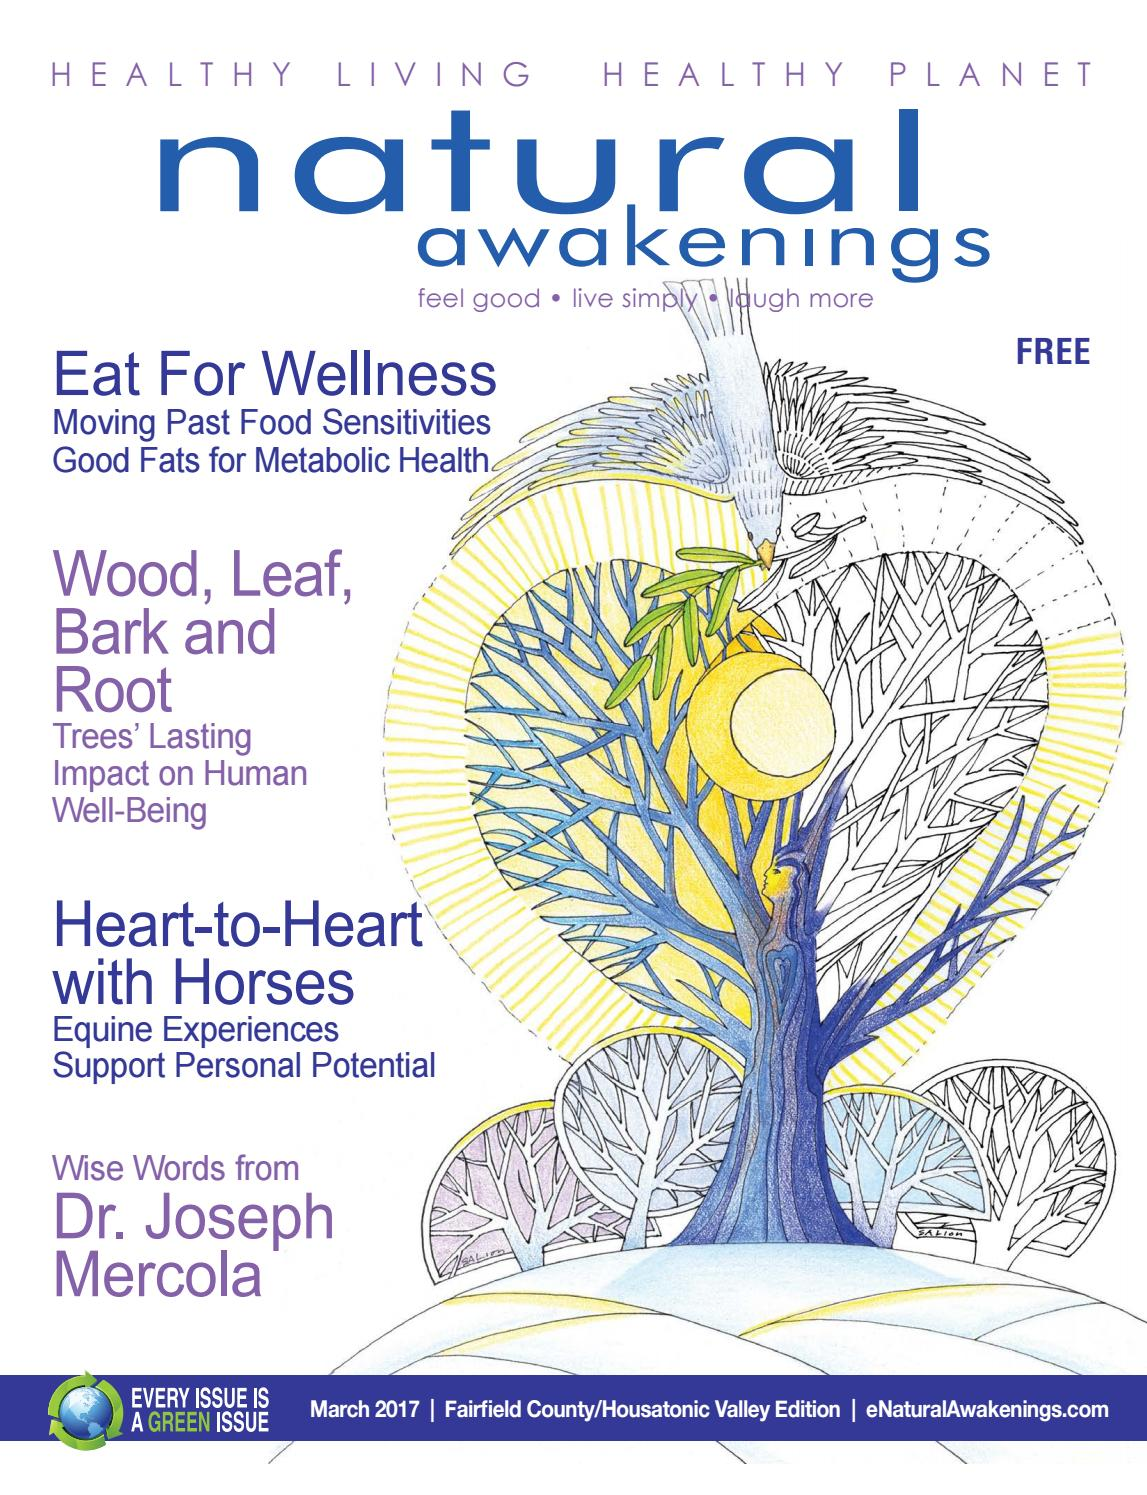 Natural awakenings fairfield county march 2017 by natural awakenings natural awakenings fairfield county march 2017 by natural awakenings magazine issuu fandeluxe Image collections